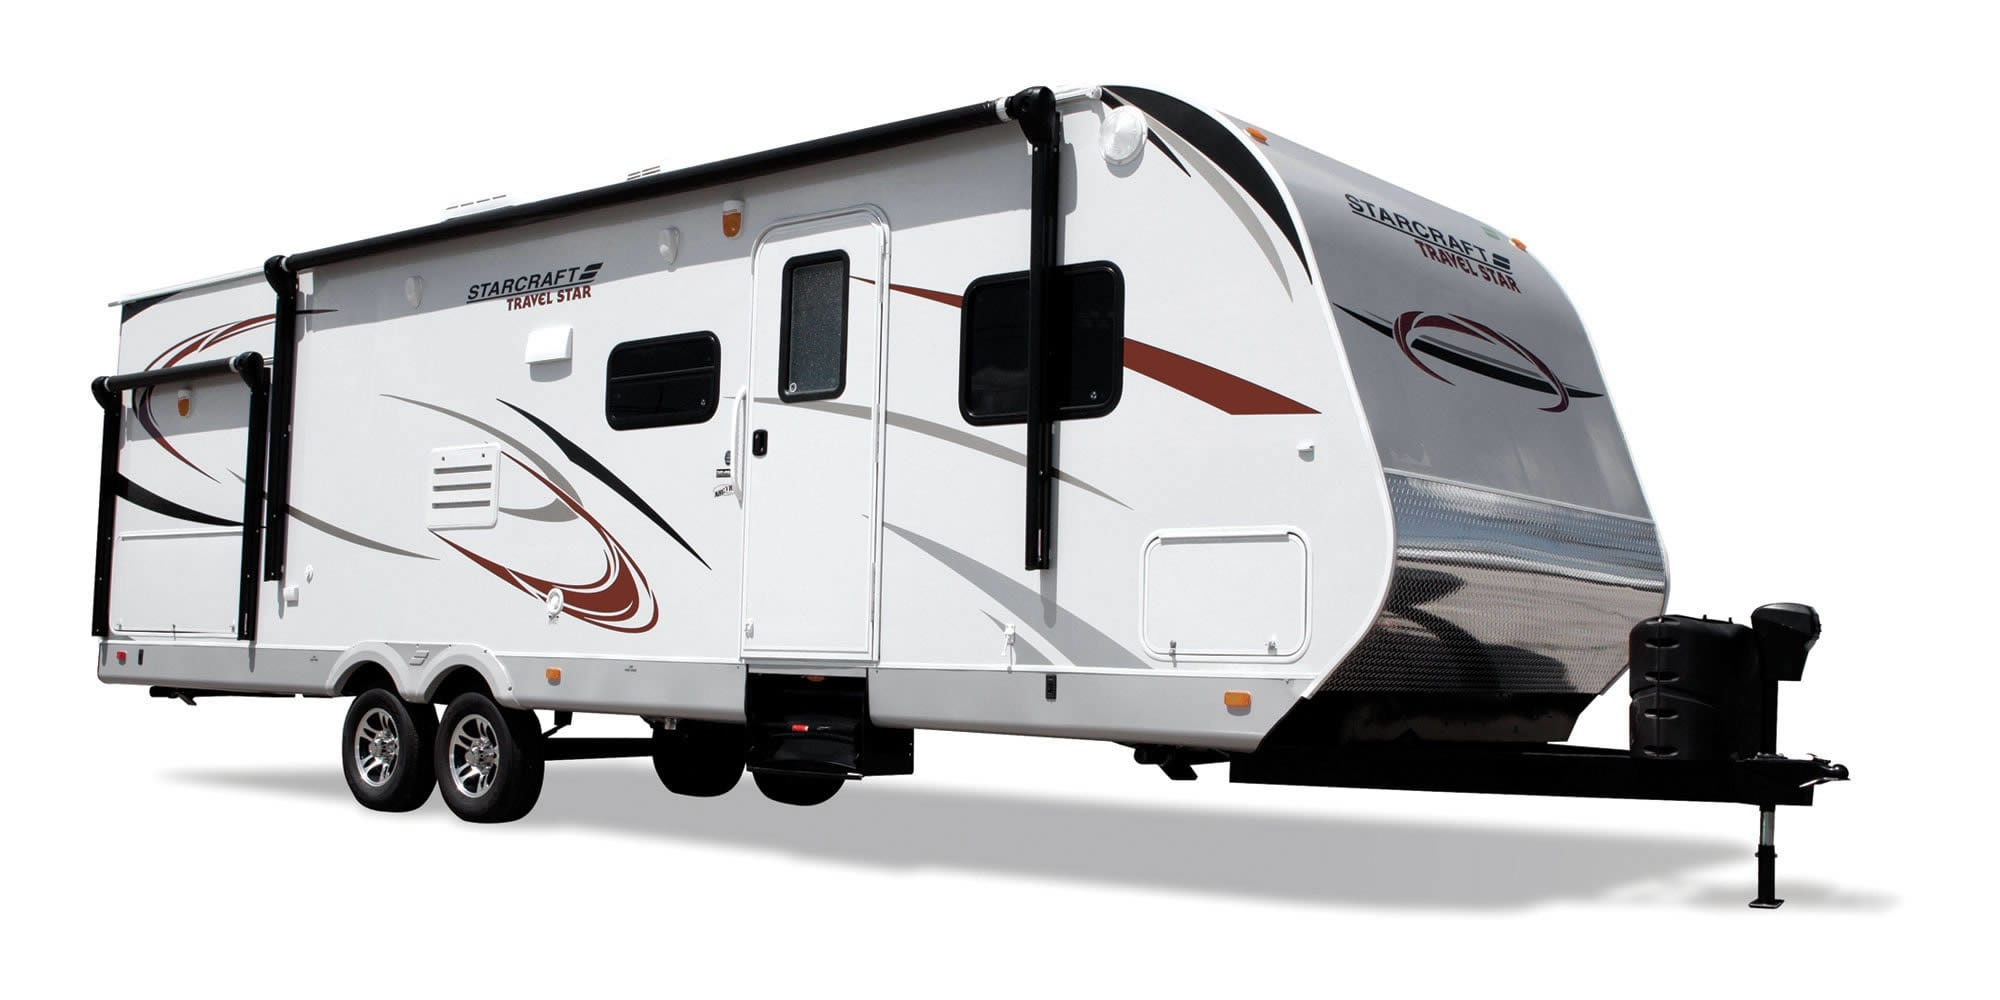 rv invoice price best rv price oklahomas largest rv dealer bob hurley rv tulsa 2000 X 1000